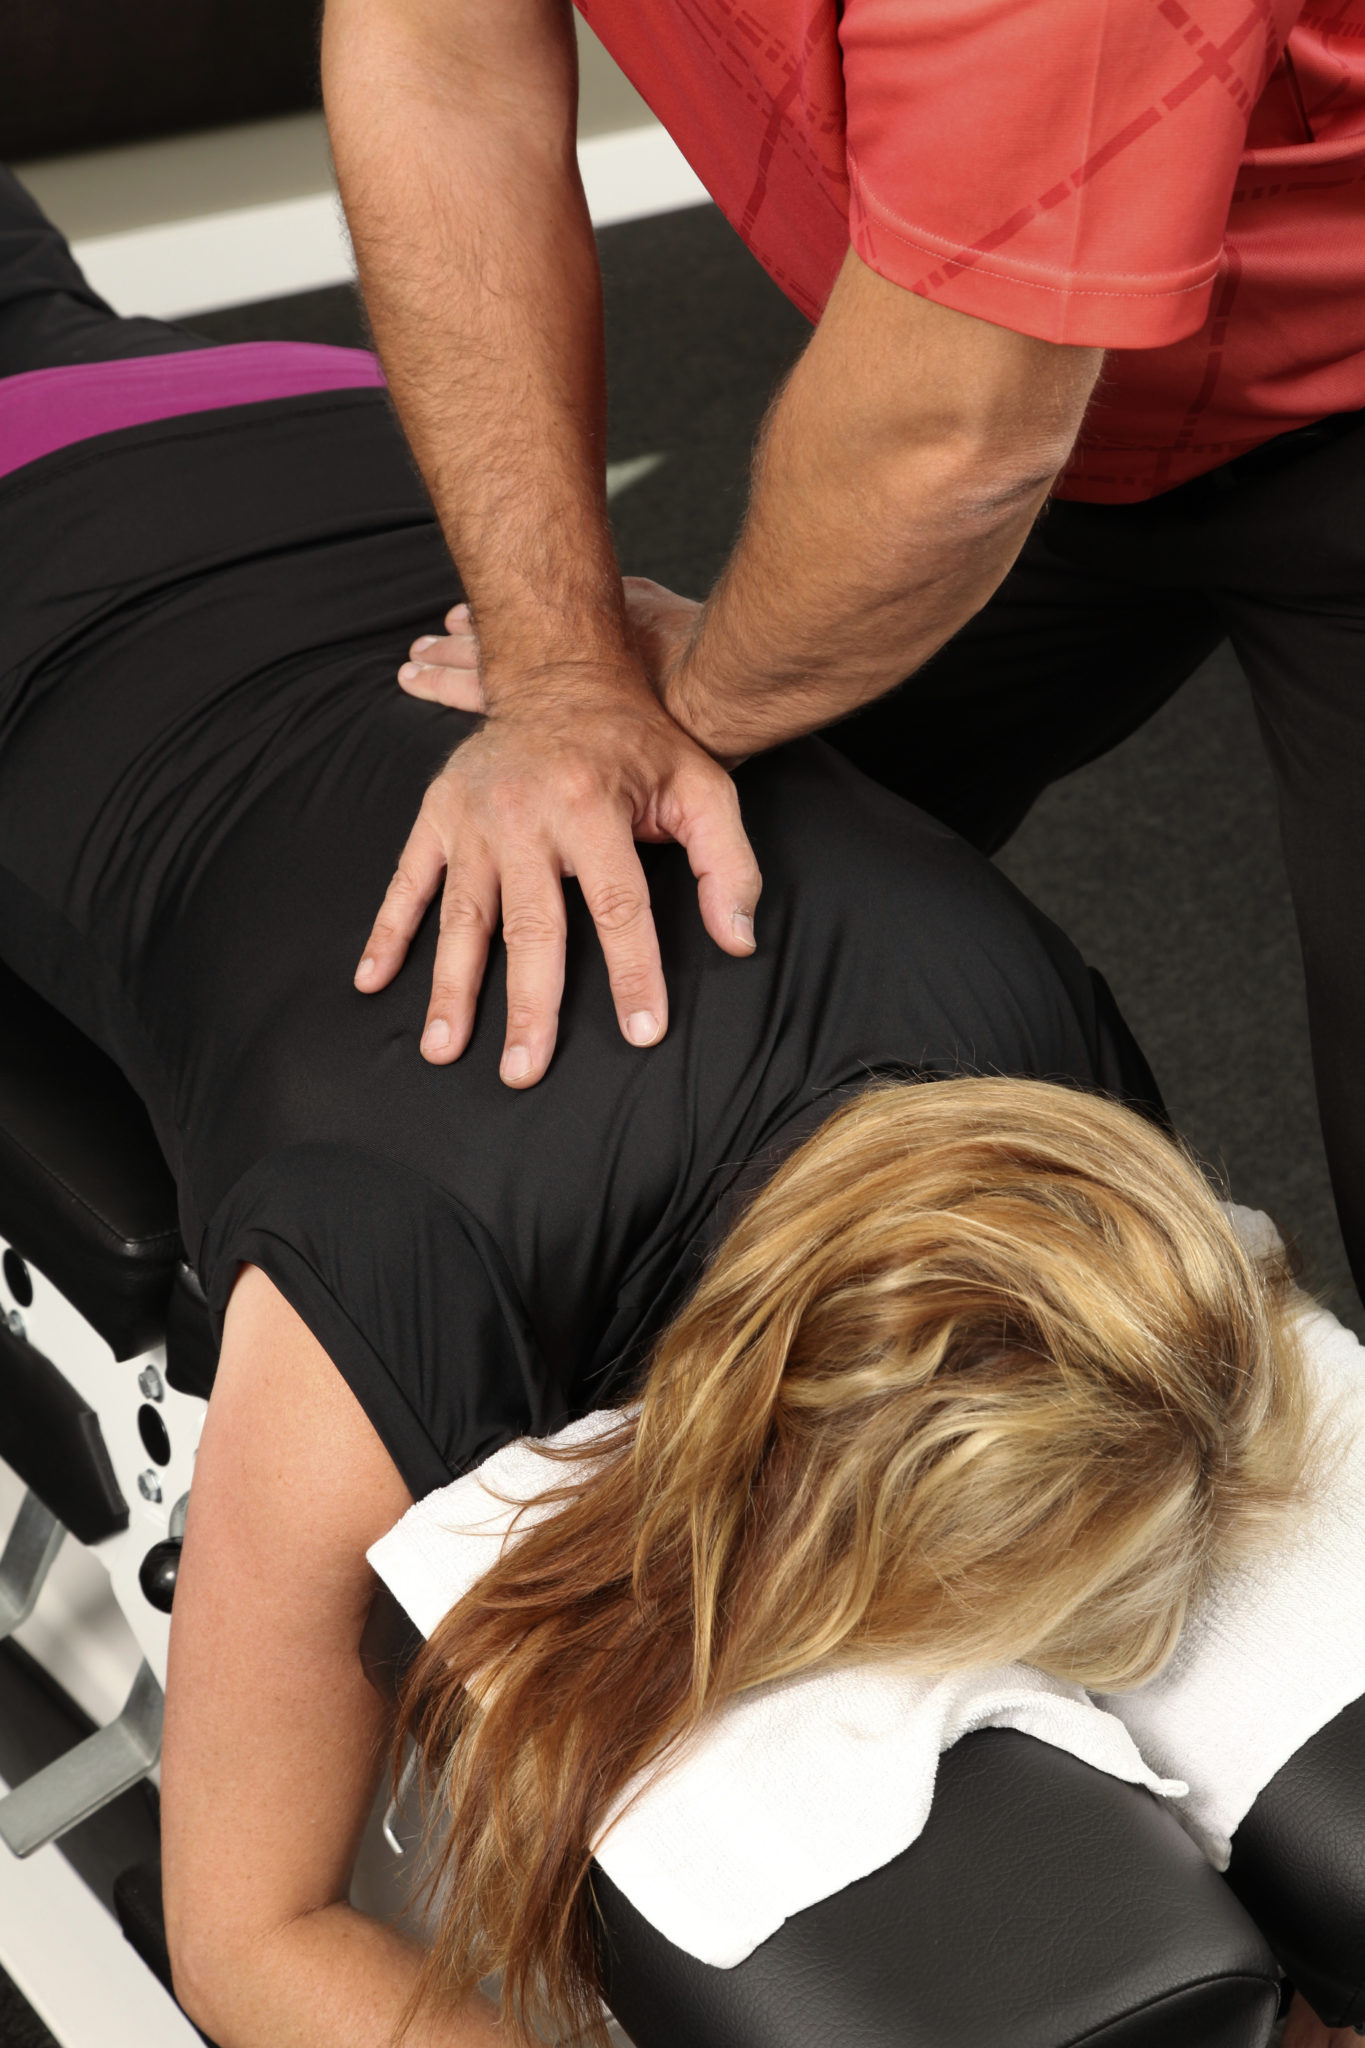 How Chiropractic Care Has Helped People Through the Ages